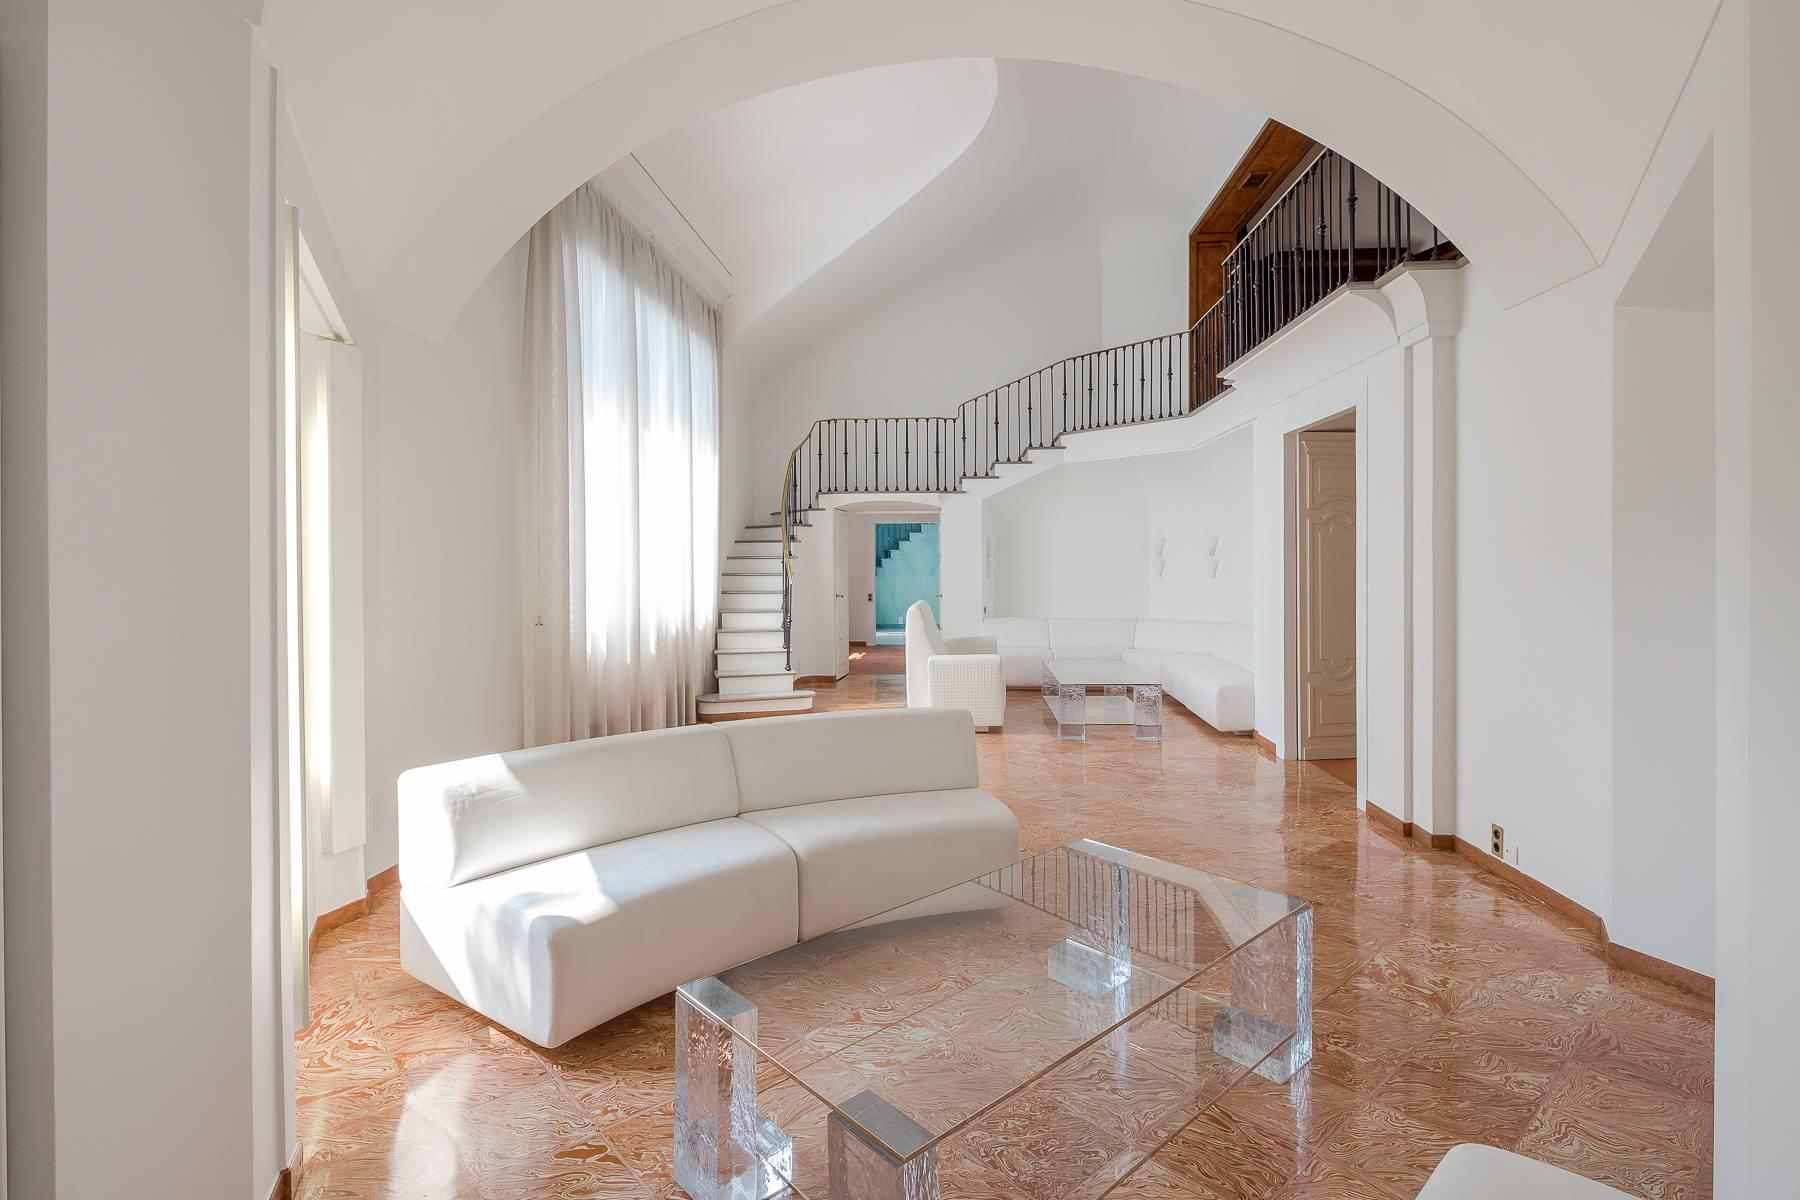 Inviting 482 sqm property with a view of the greenery in the XX Settembre / Tamburini area - 14